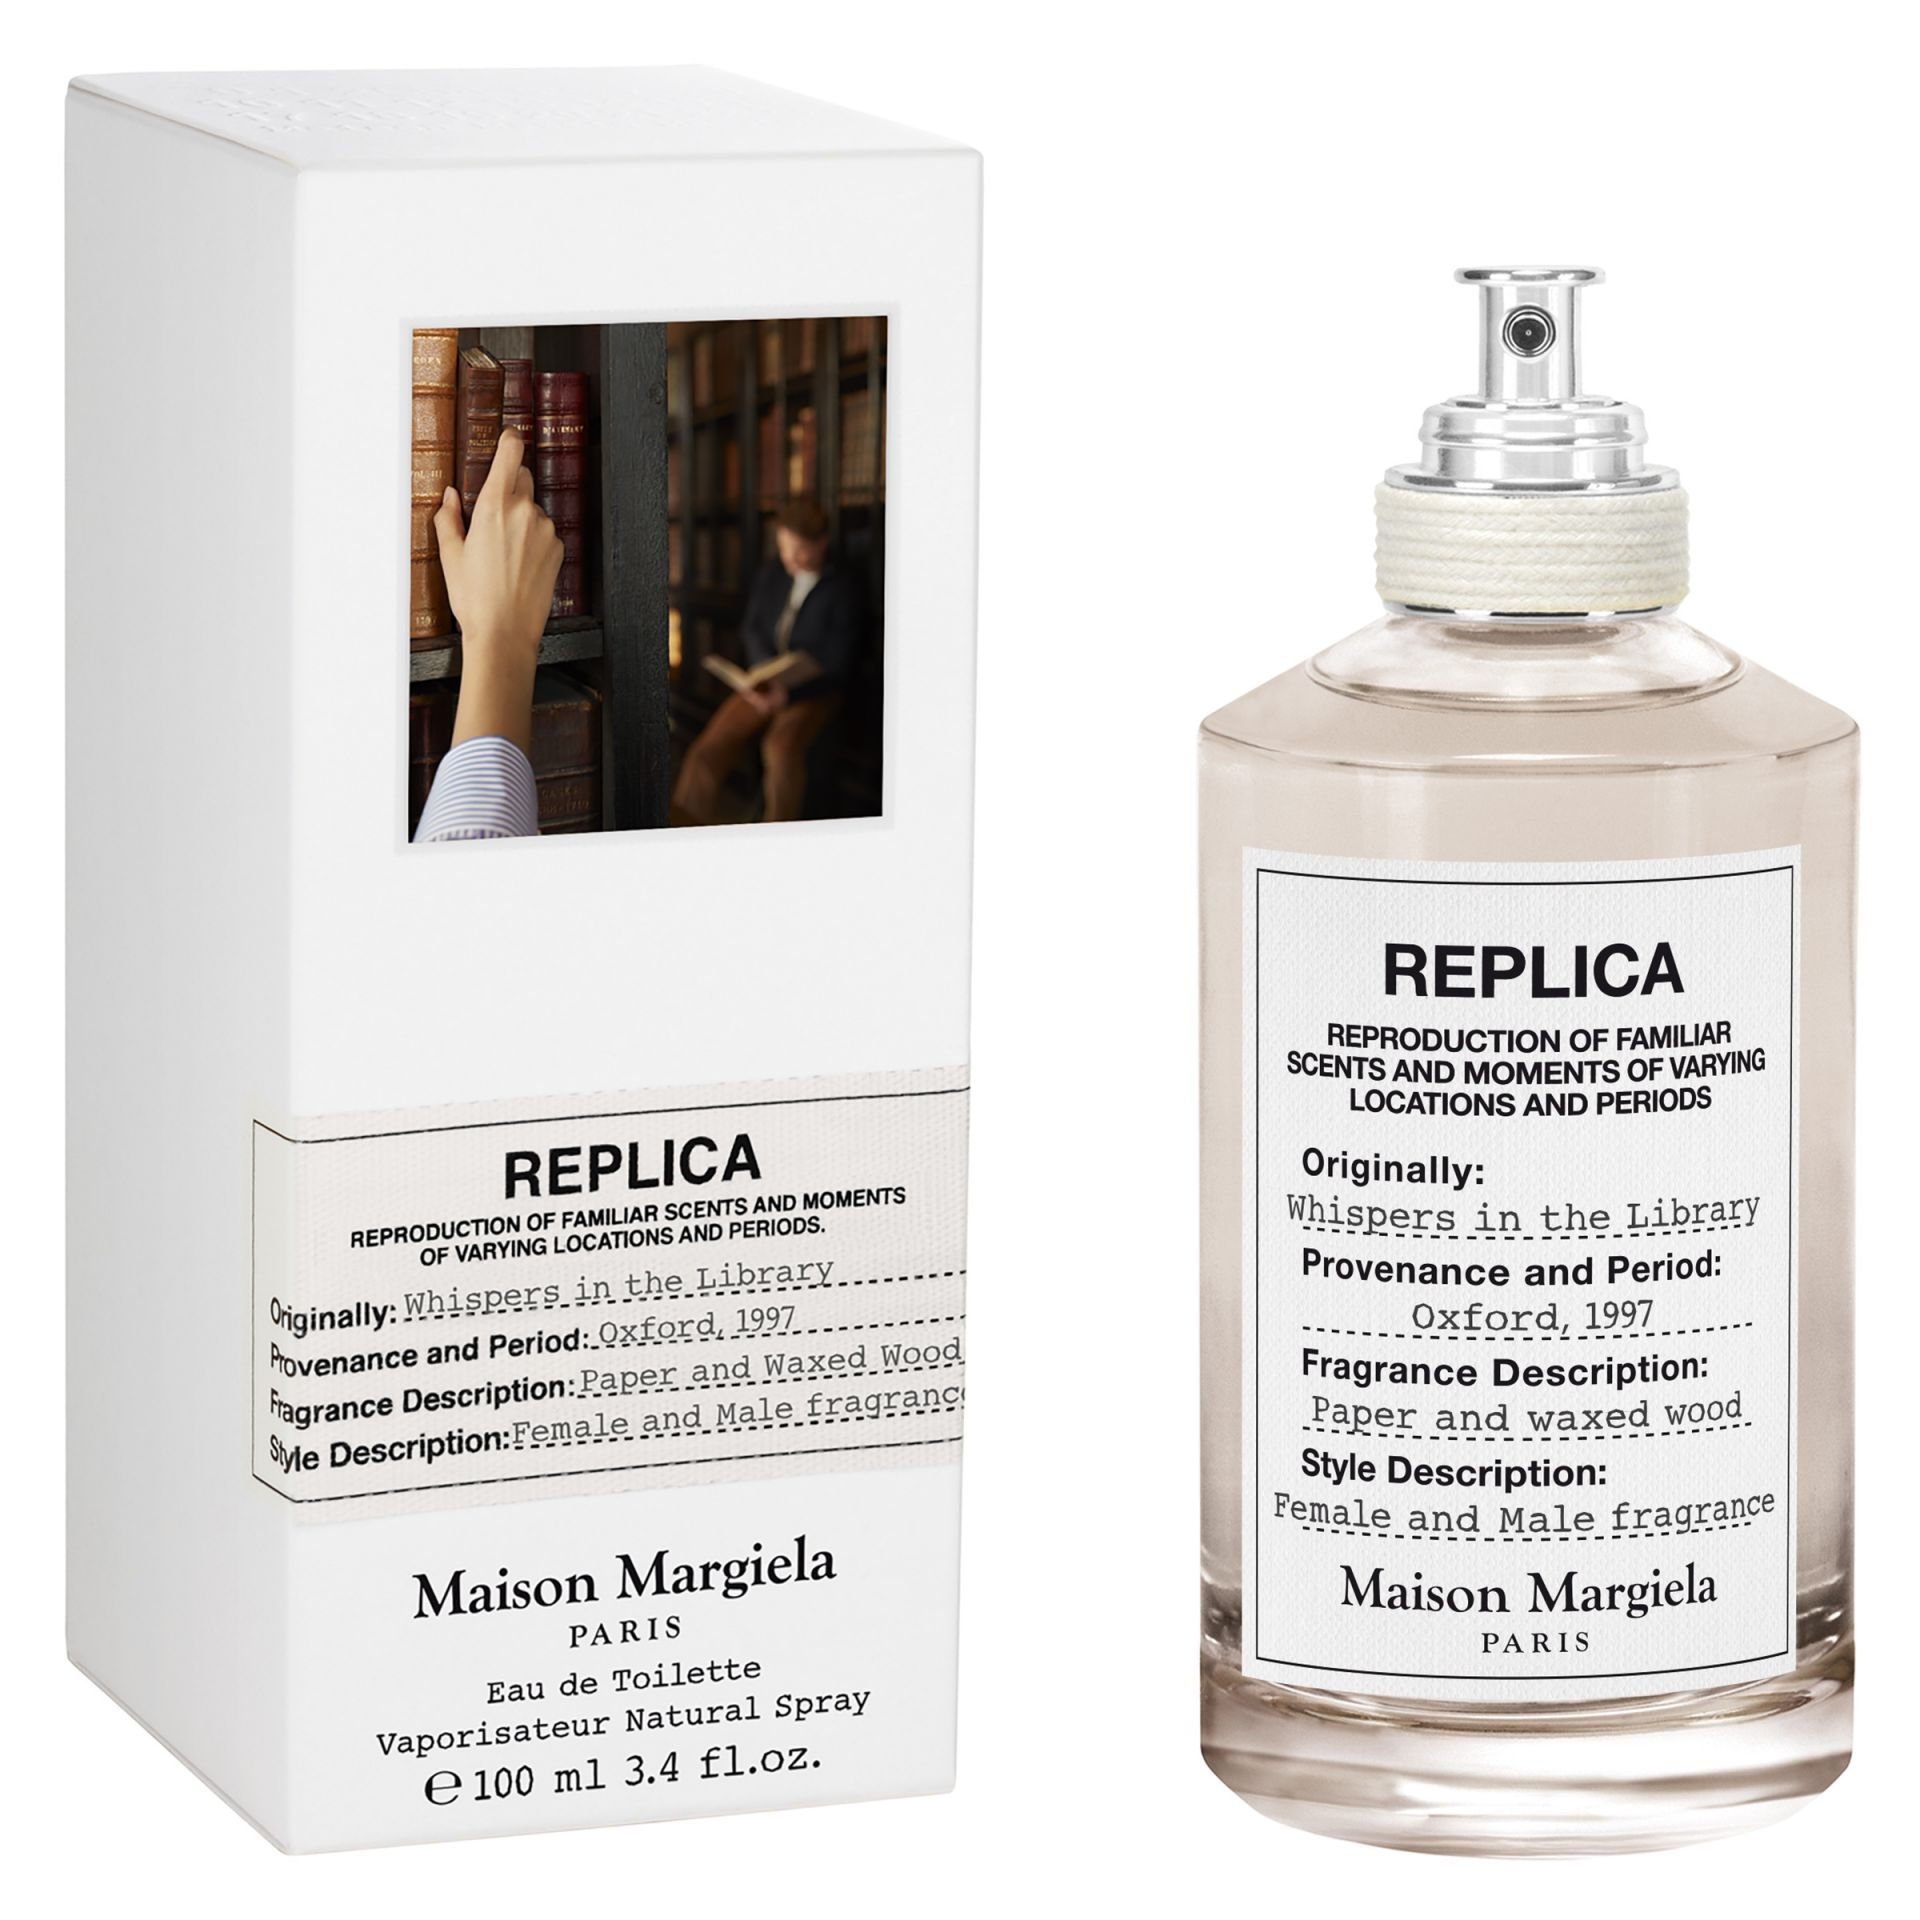 Whispers in the Library Maison Martin Margiela voor dames en heren